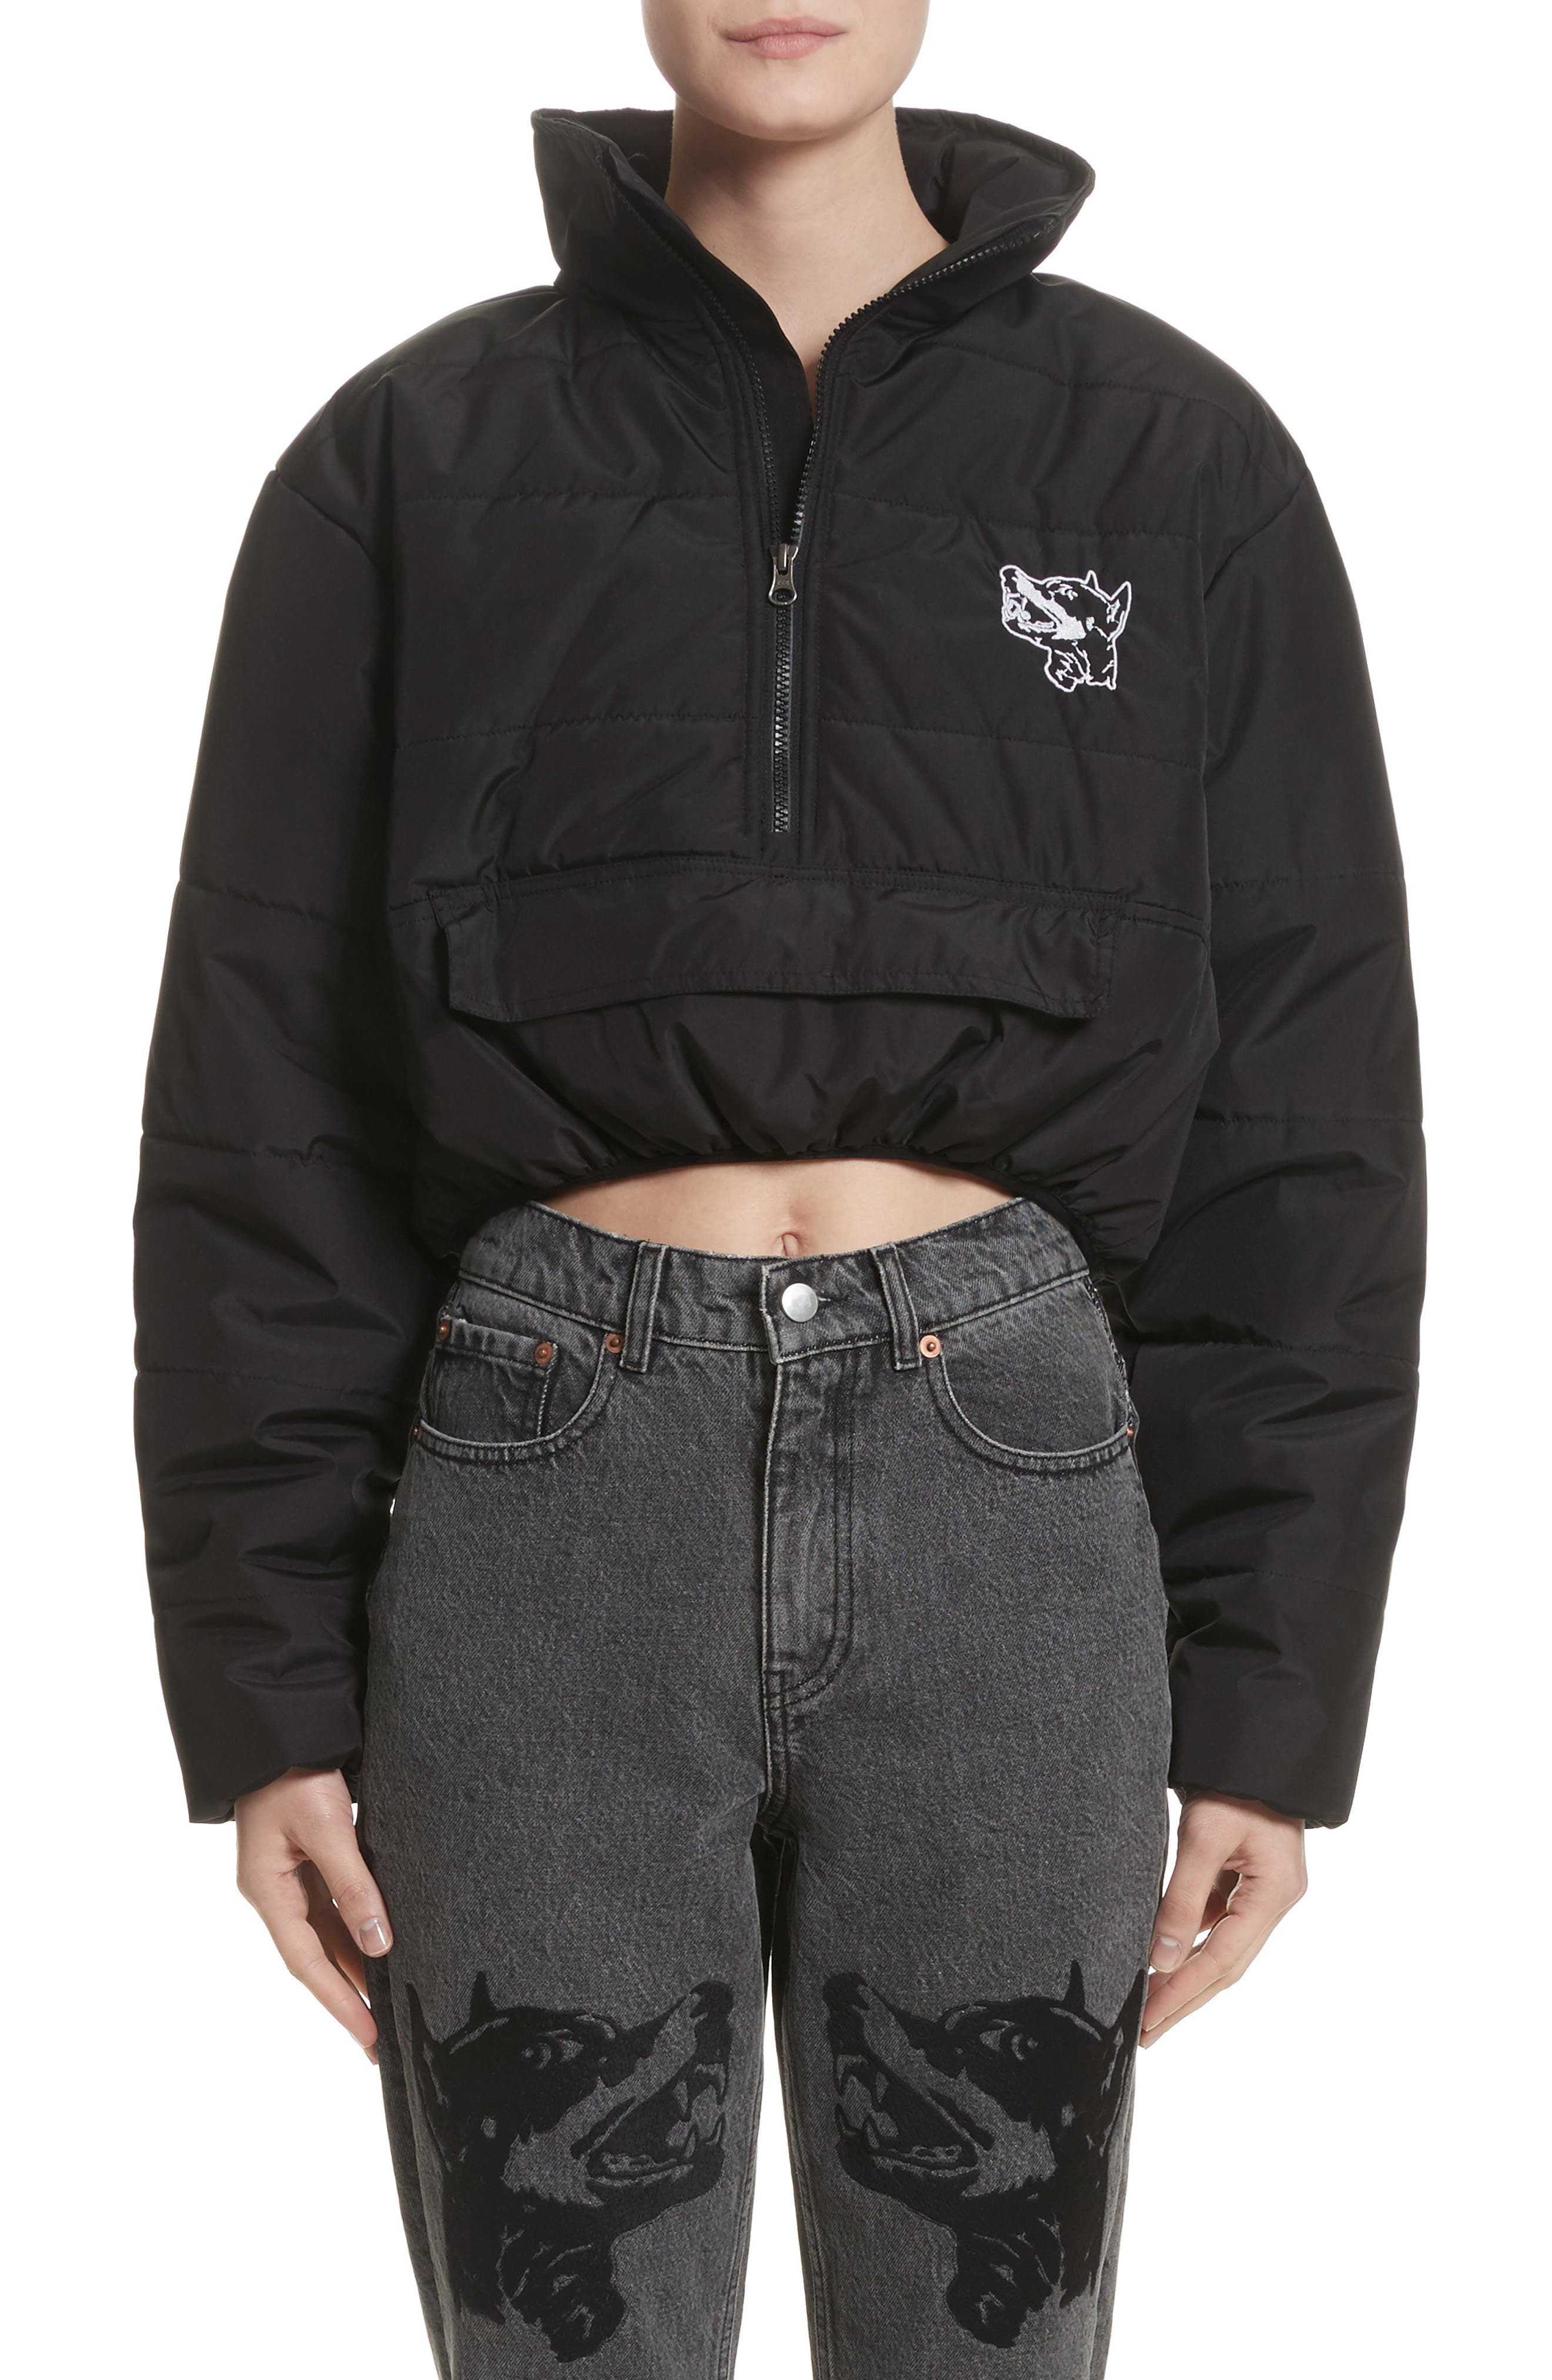 Misery Crop Puffer Coat,                             Main thumbnail 1, color,                             001